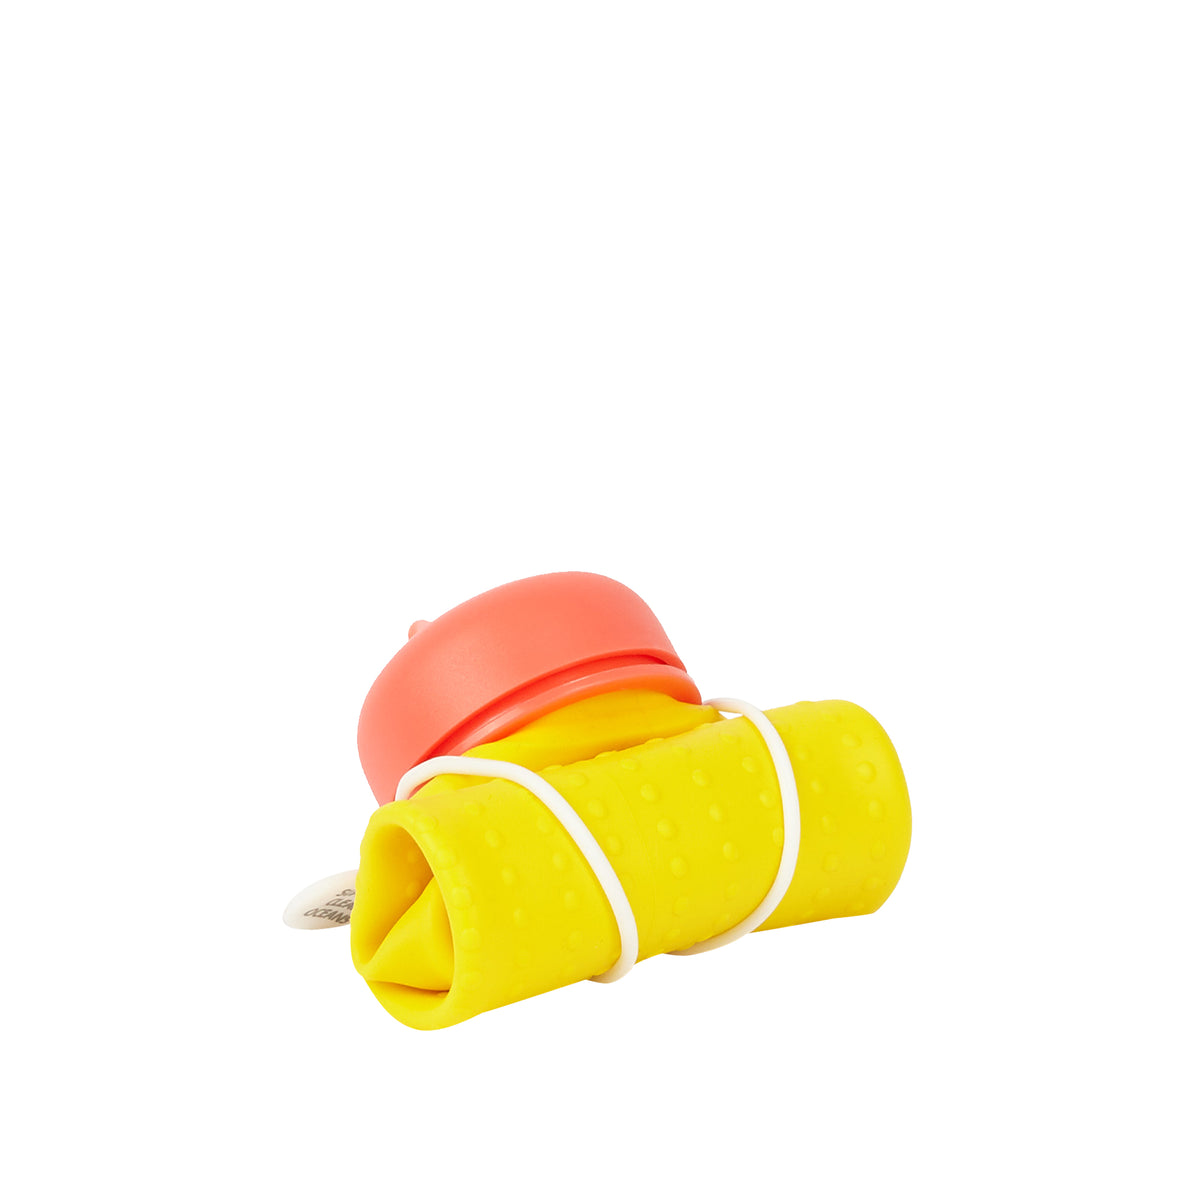 Rolla Bottle - Yellow, Coral Lid + White Strap -rolled